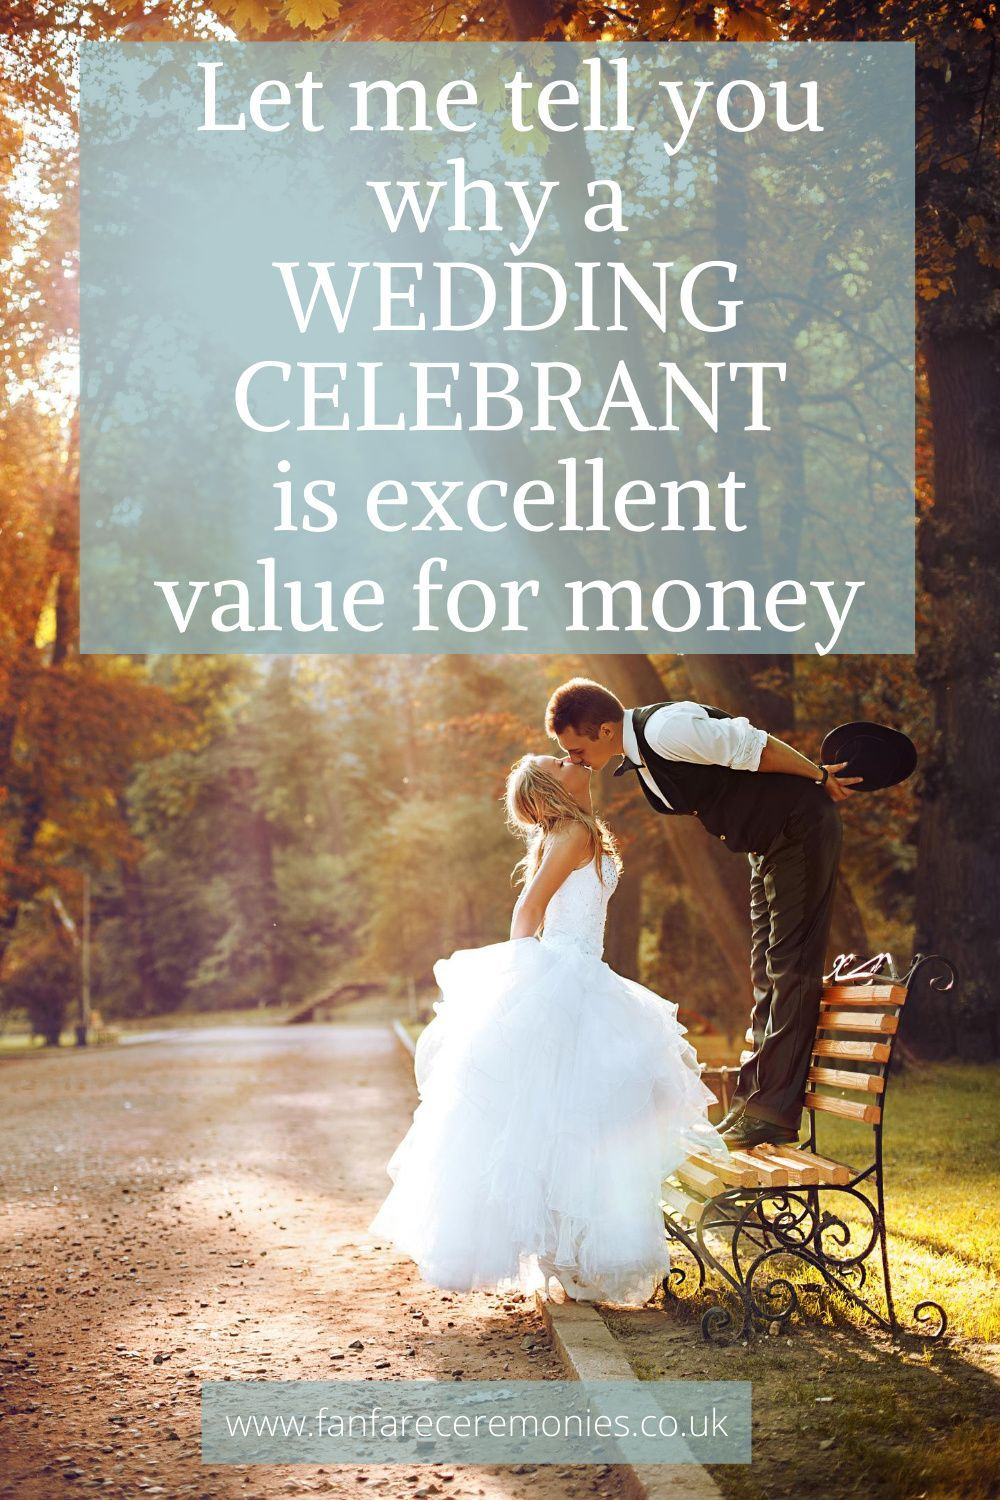 Let me tell you why a WEDDING CELEBRANT is such excellent